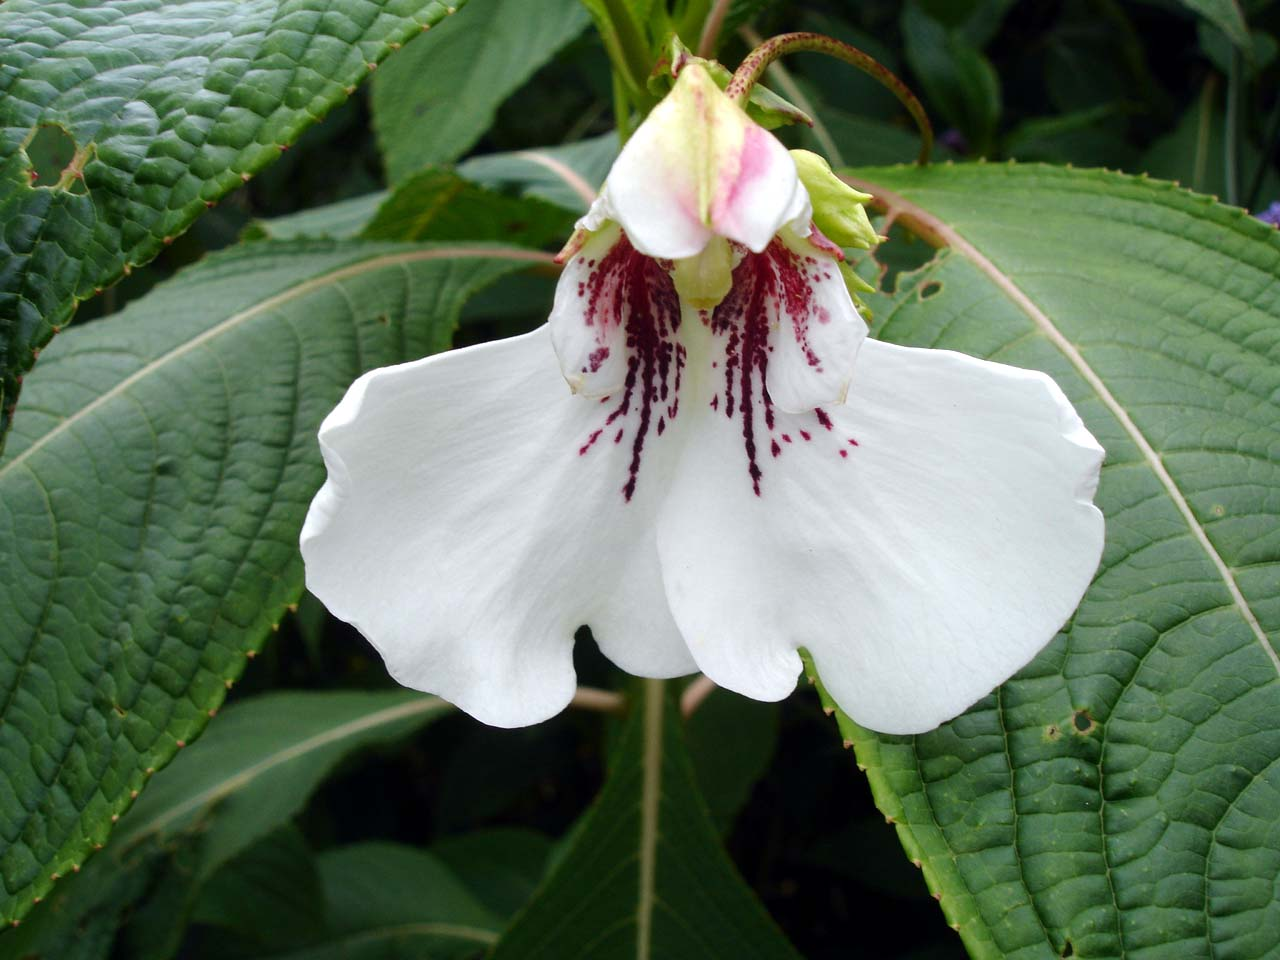 http://upload.wikimedia.org/wikipedia/commons/0/0a/Impatiens_tinctoria1b.UME.jpg